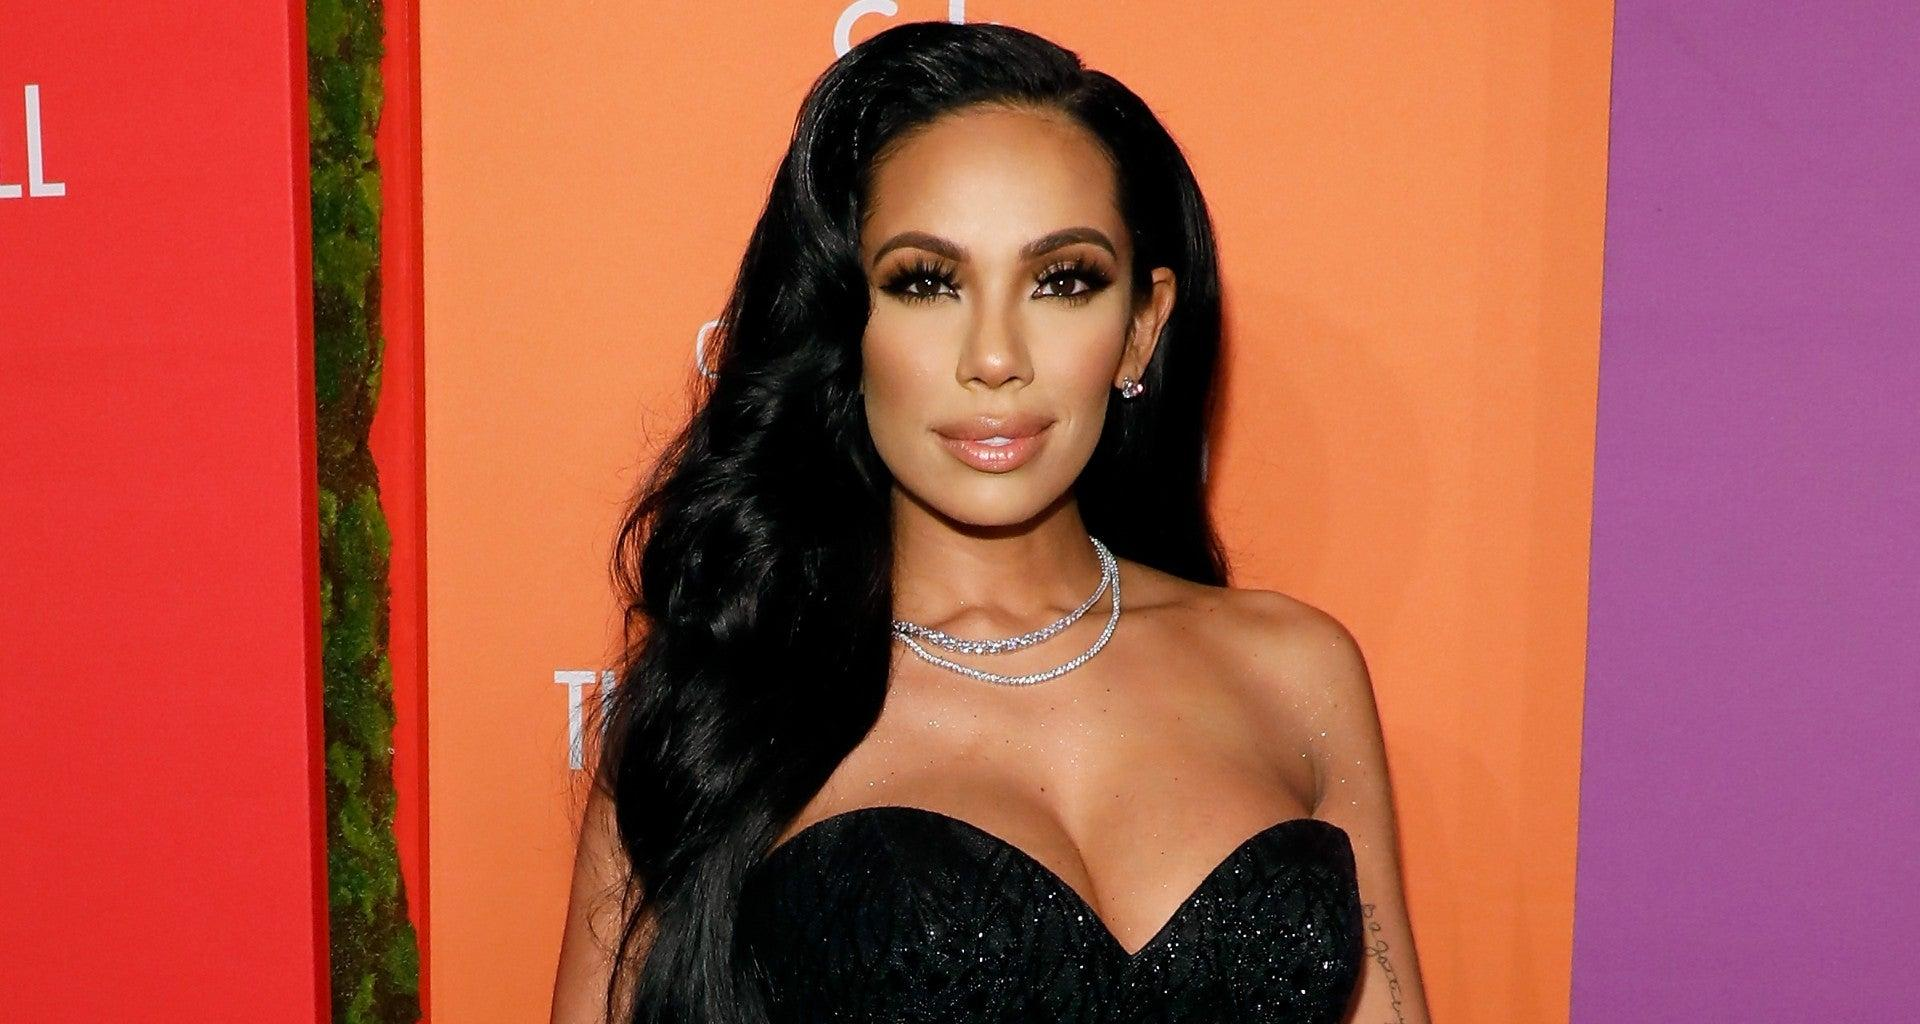 Erica Mena Celebrates The Birthday Of Her BFF - See The Emotional Message That She Shared